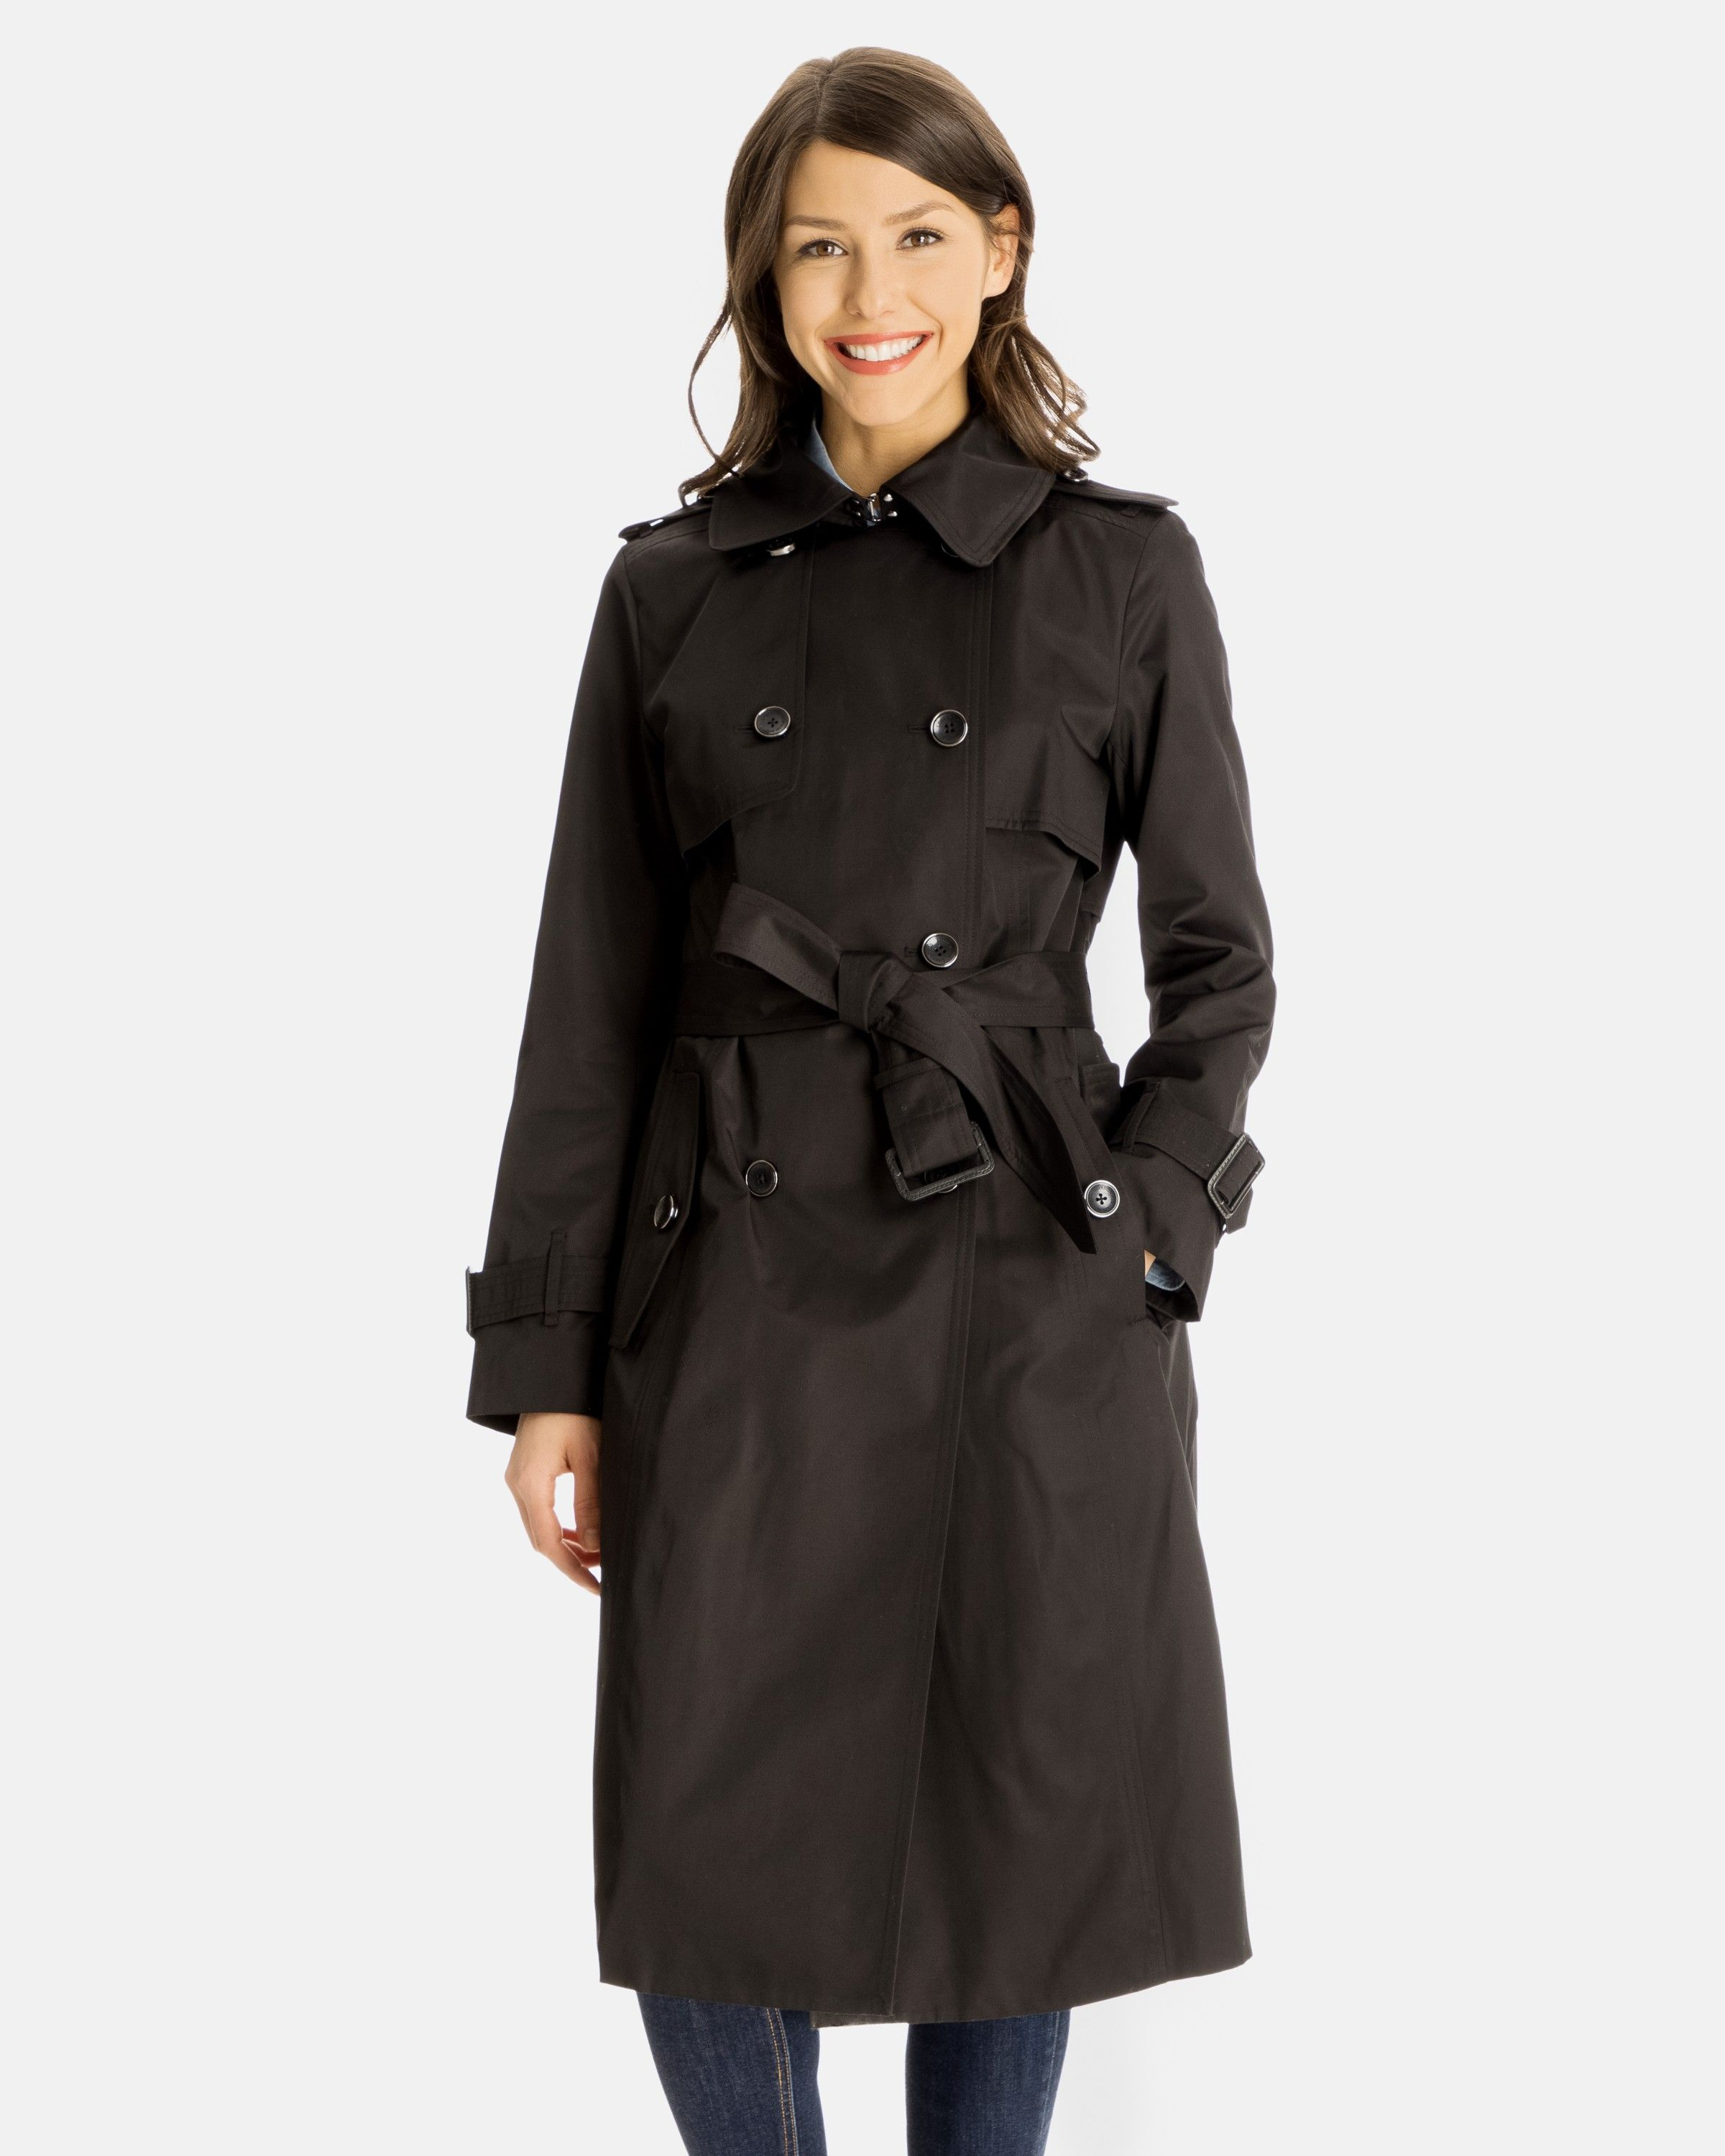 e7f22bb5f74 Fern Double-Breasted Trench Coat for Women - Gun Flaps